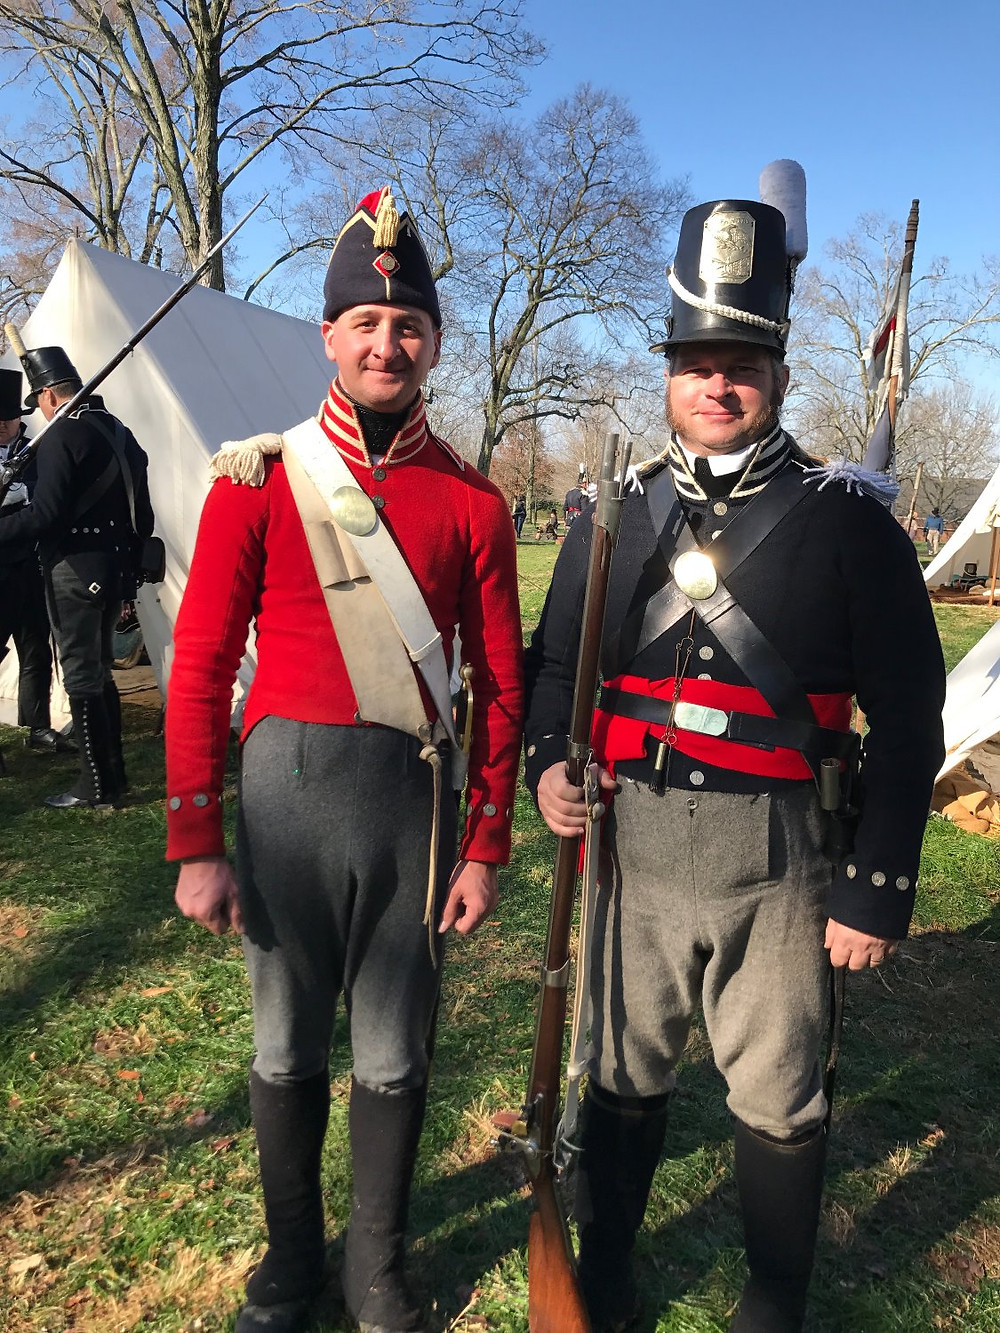 Reenactment Soldiers at Andrew Jackson's Hermitage, 2017, Reenactment of his troops for the  War of 1812 (1814 Creek War Division)